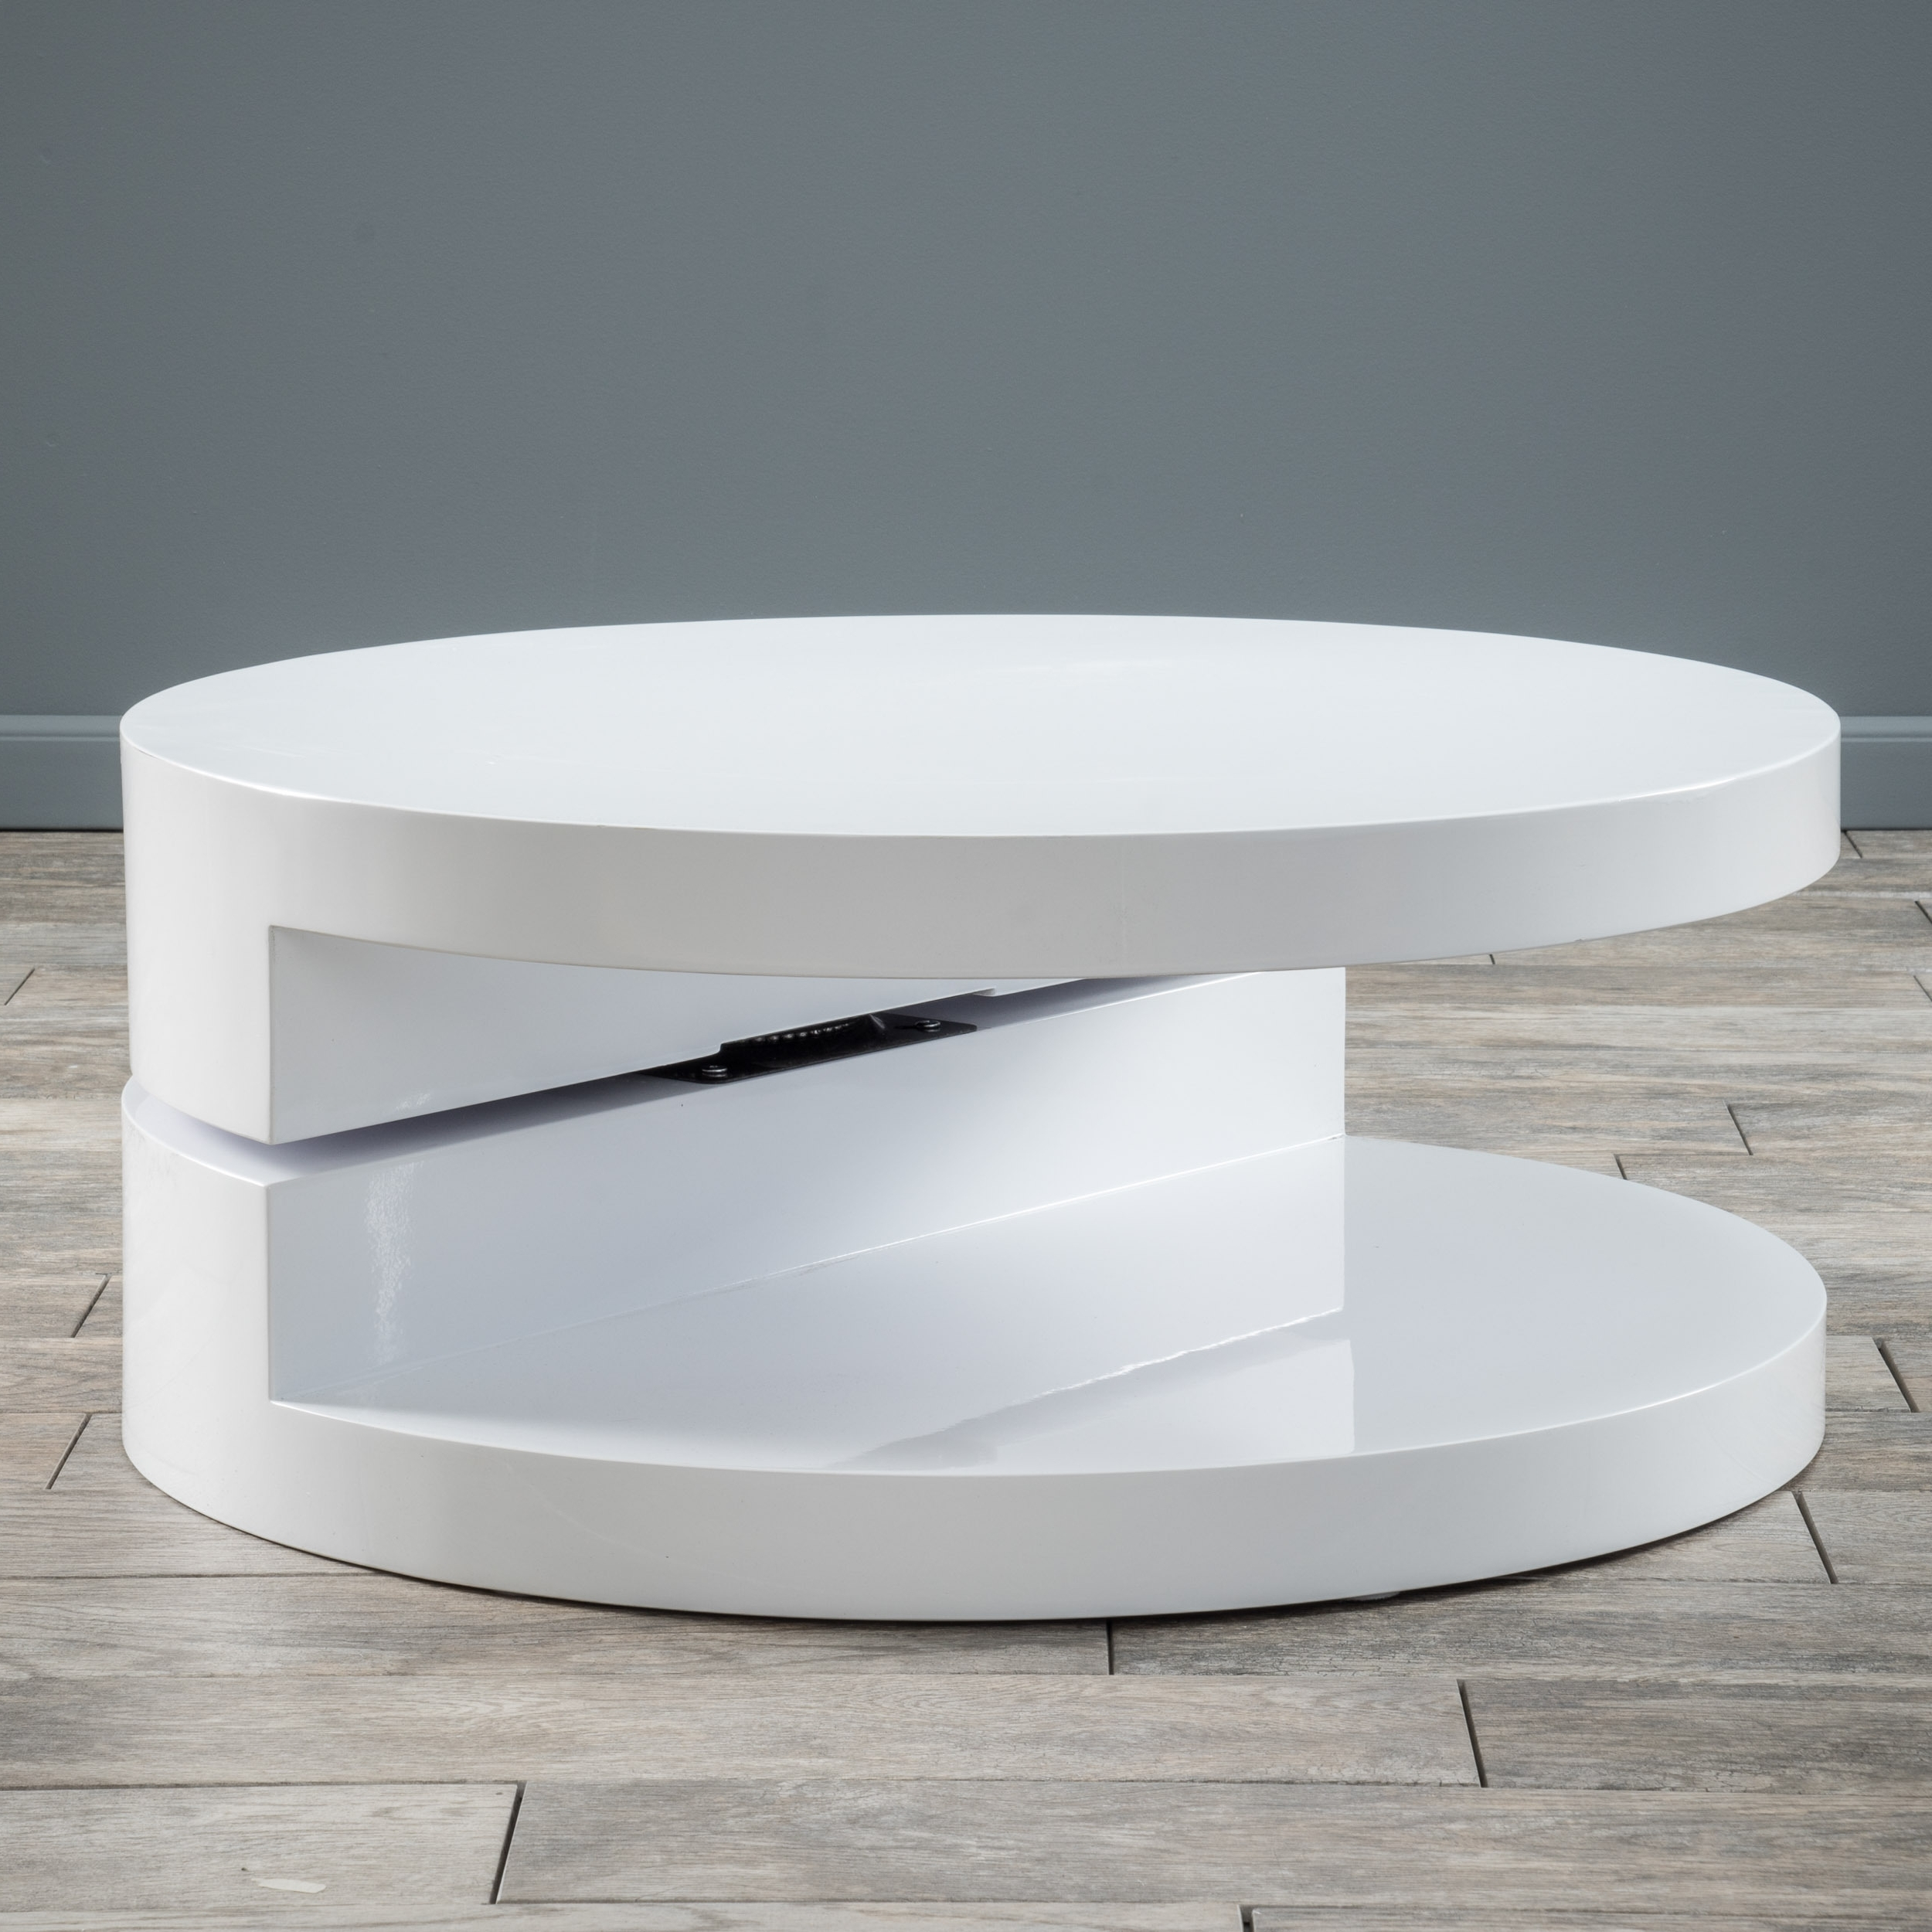 Alluring White Round Table Wood Material Glossy Finish Coffee Table With Fashionable Spin Rotating Coffee Tables (View 3 of 20)